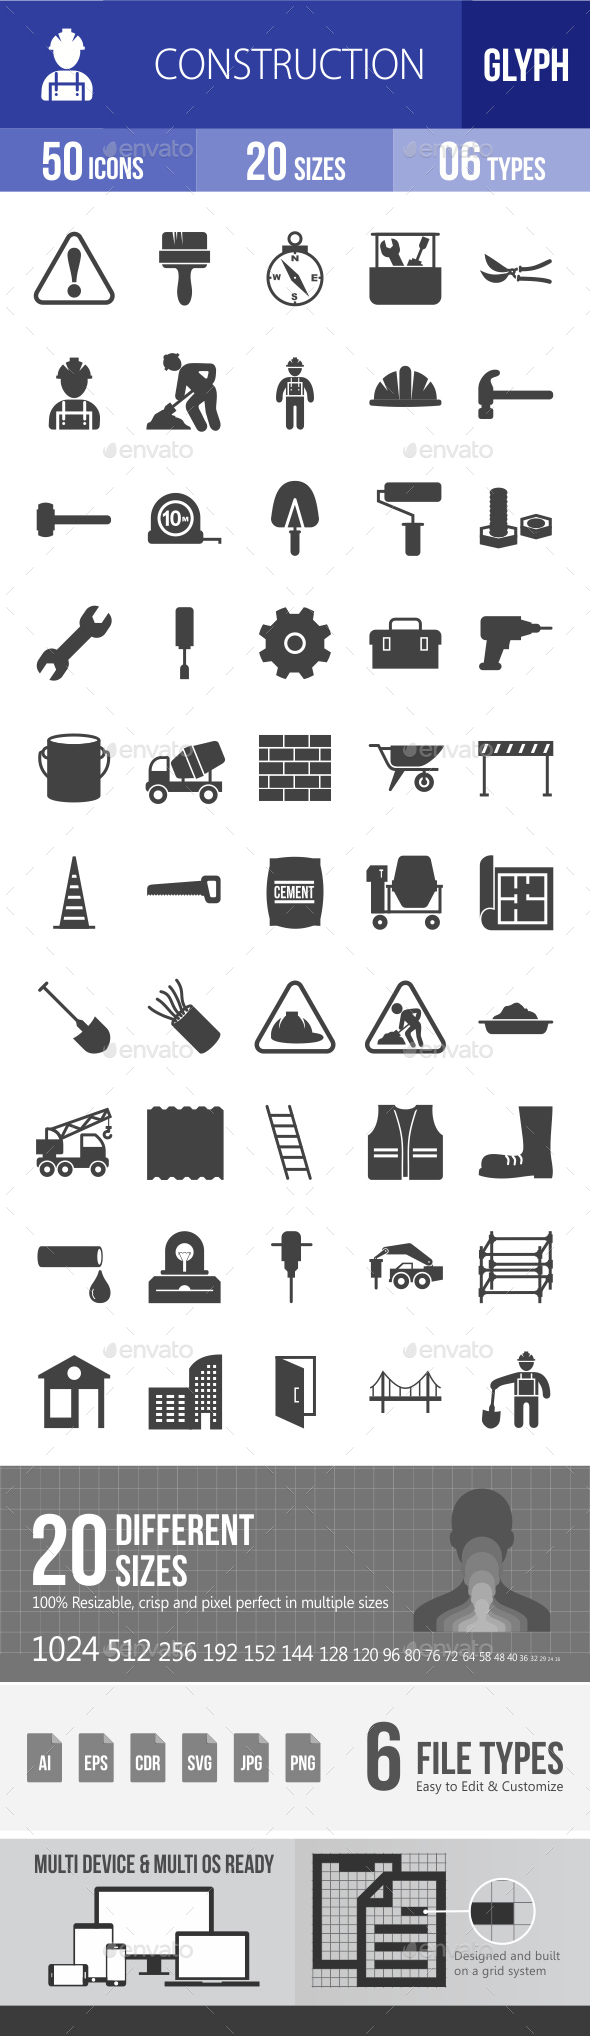 Construction Glyph Icons - Icons